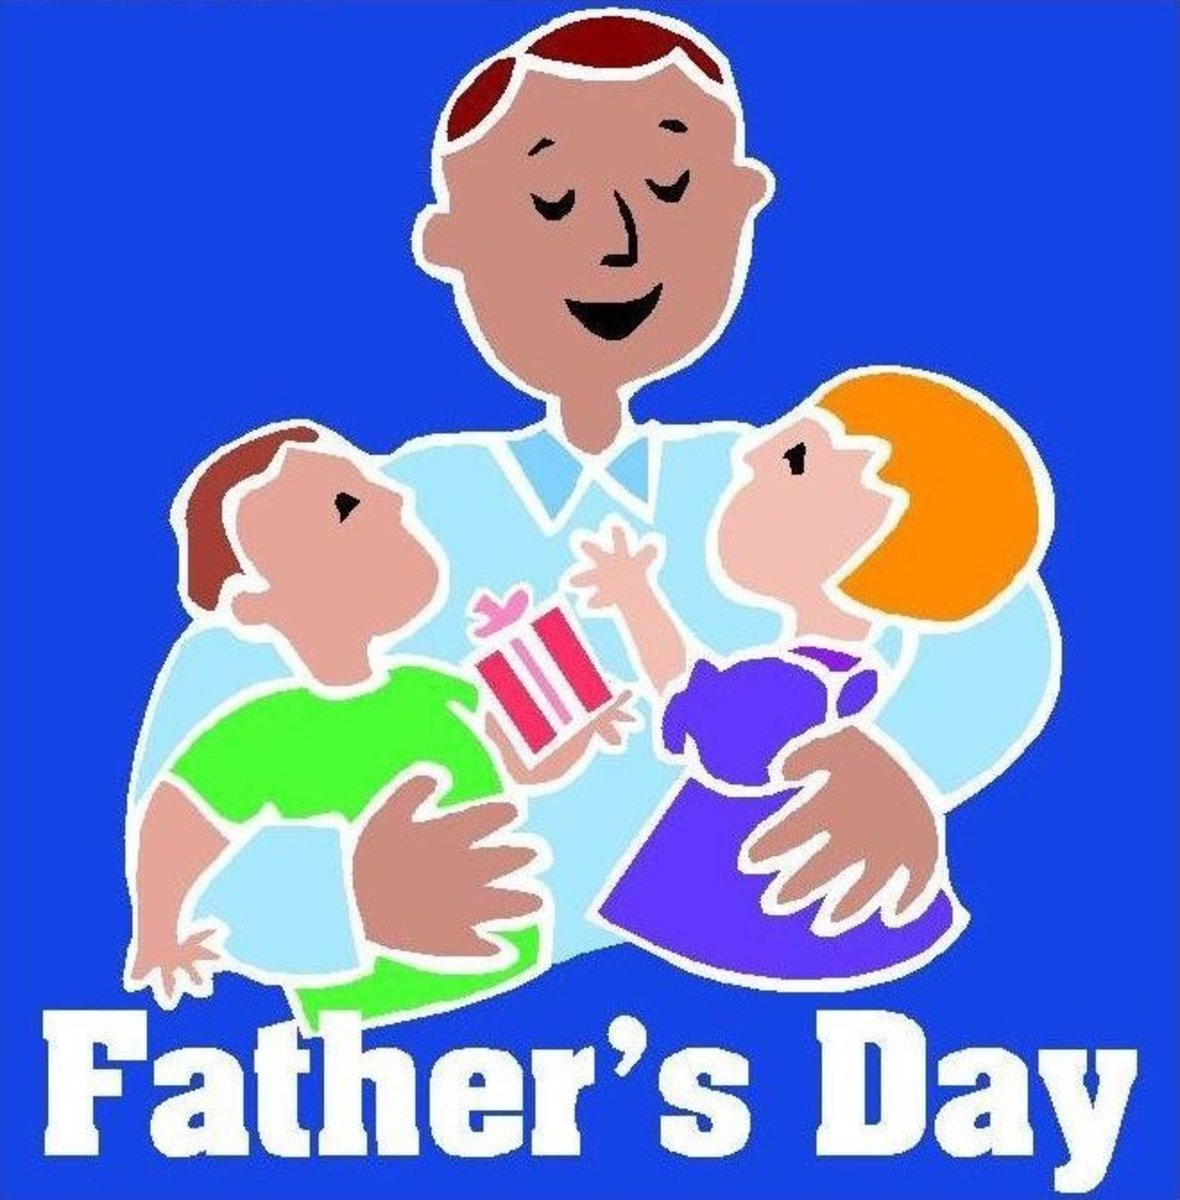 Image of Happy Father's Day from Kids